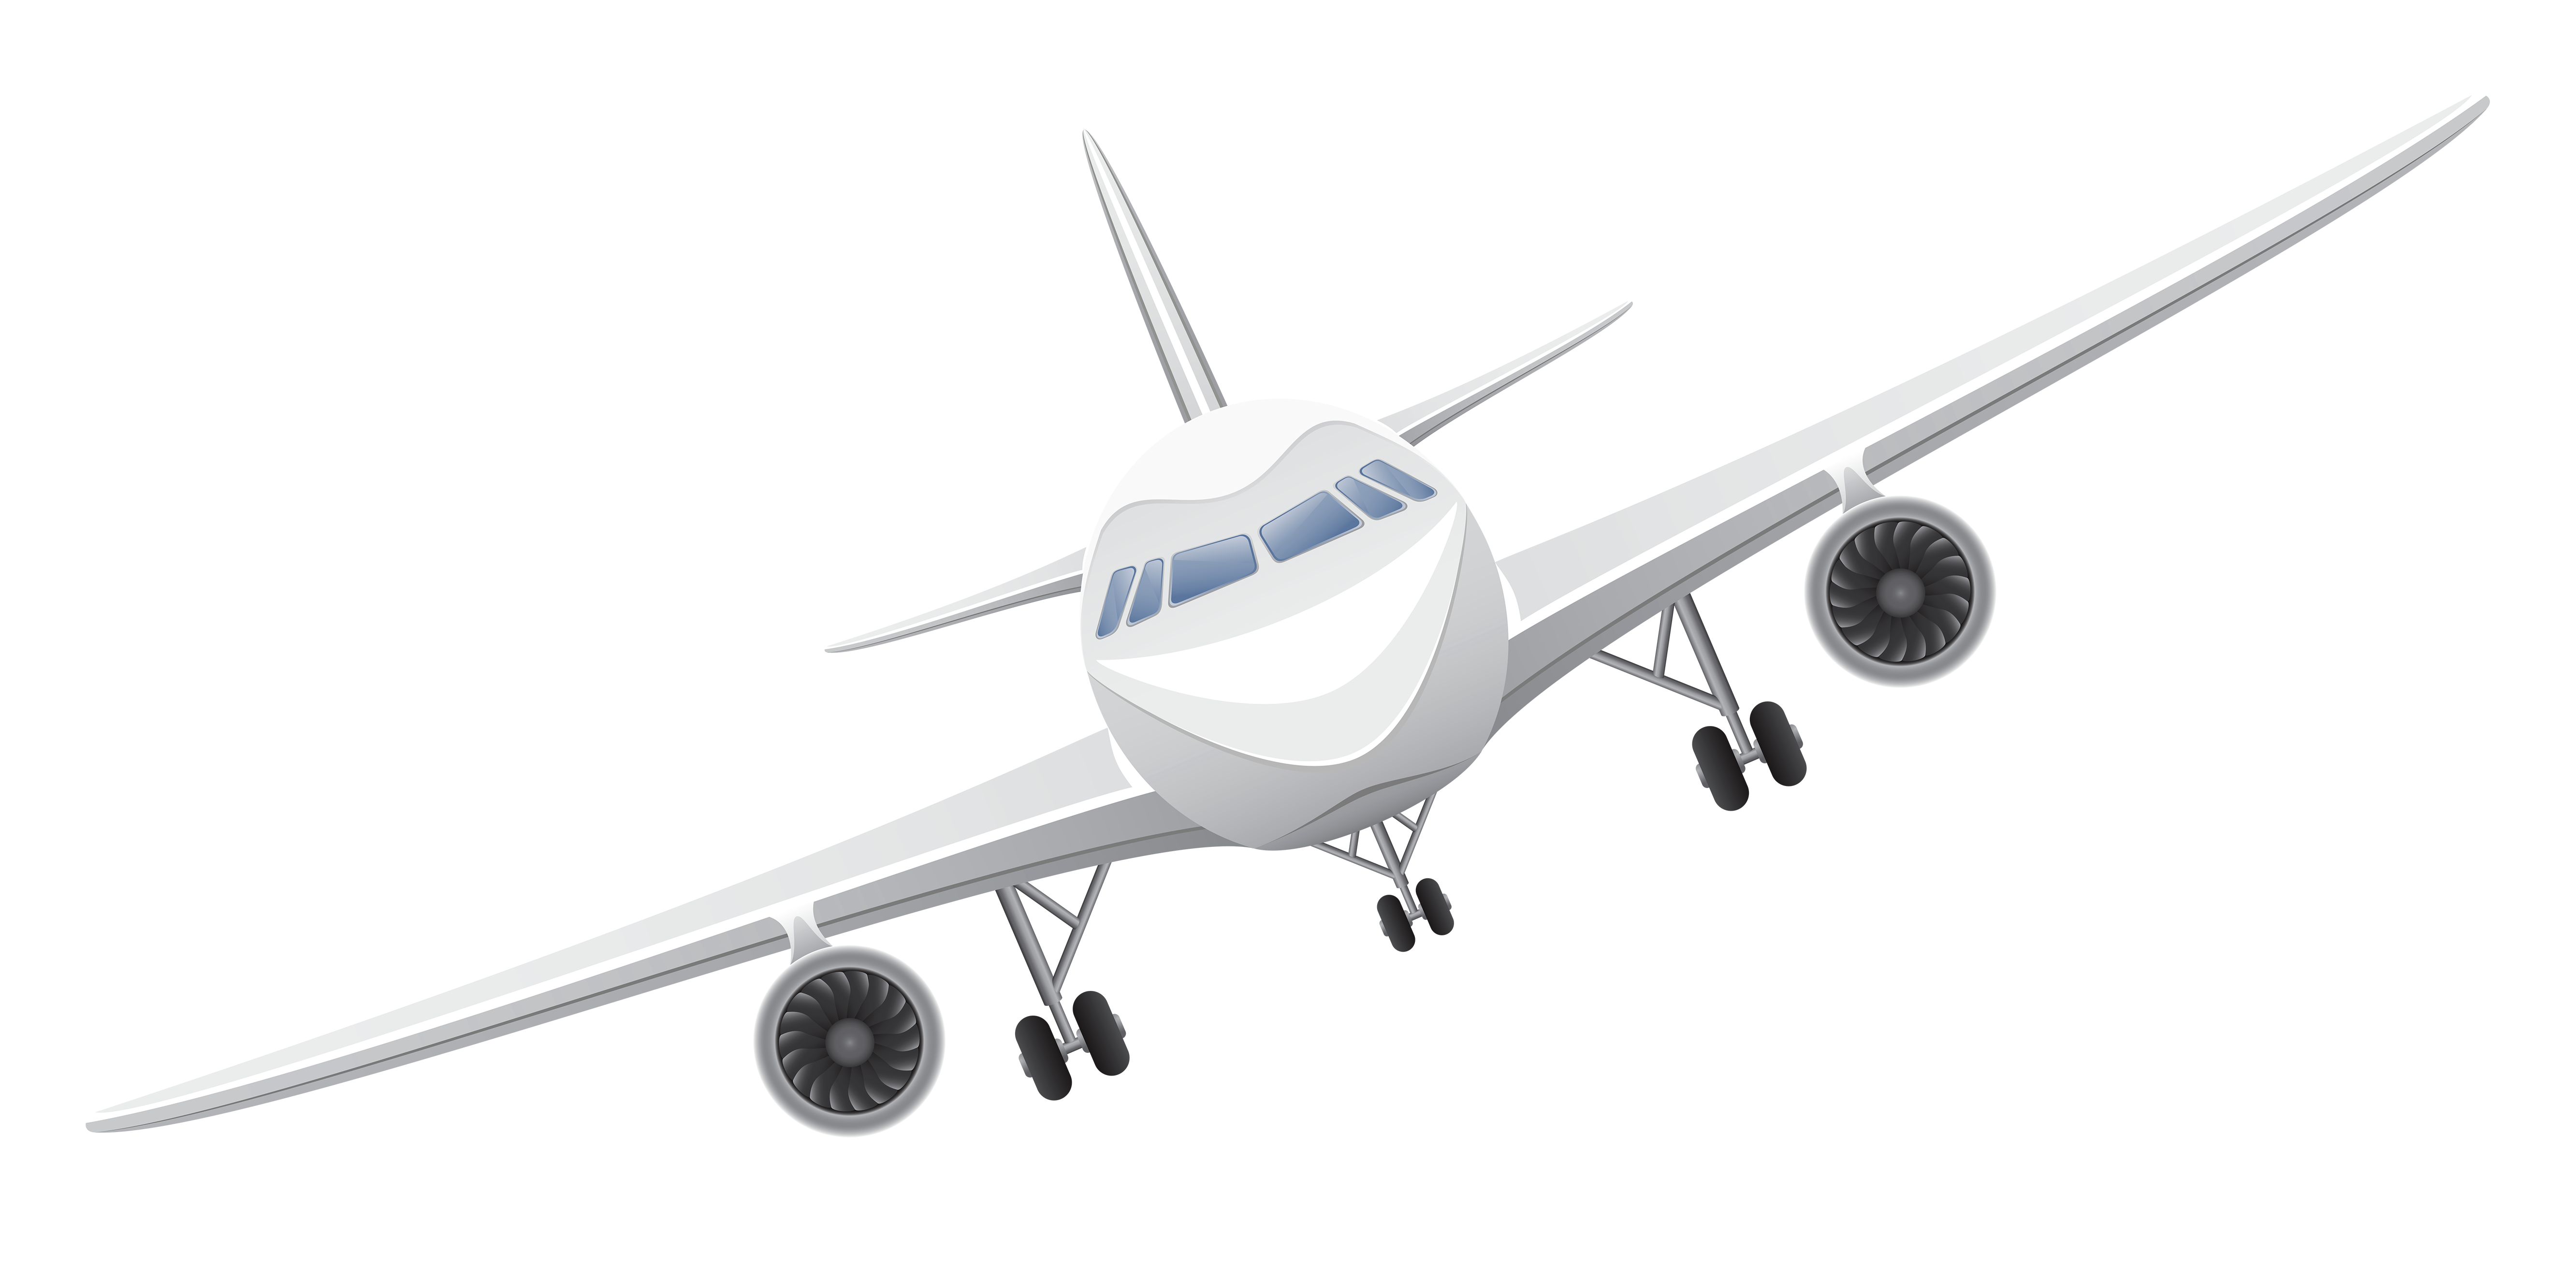 5329x2617 White Airplane Transparent Png Vector Clipartu200b Gallery